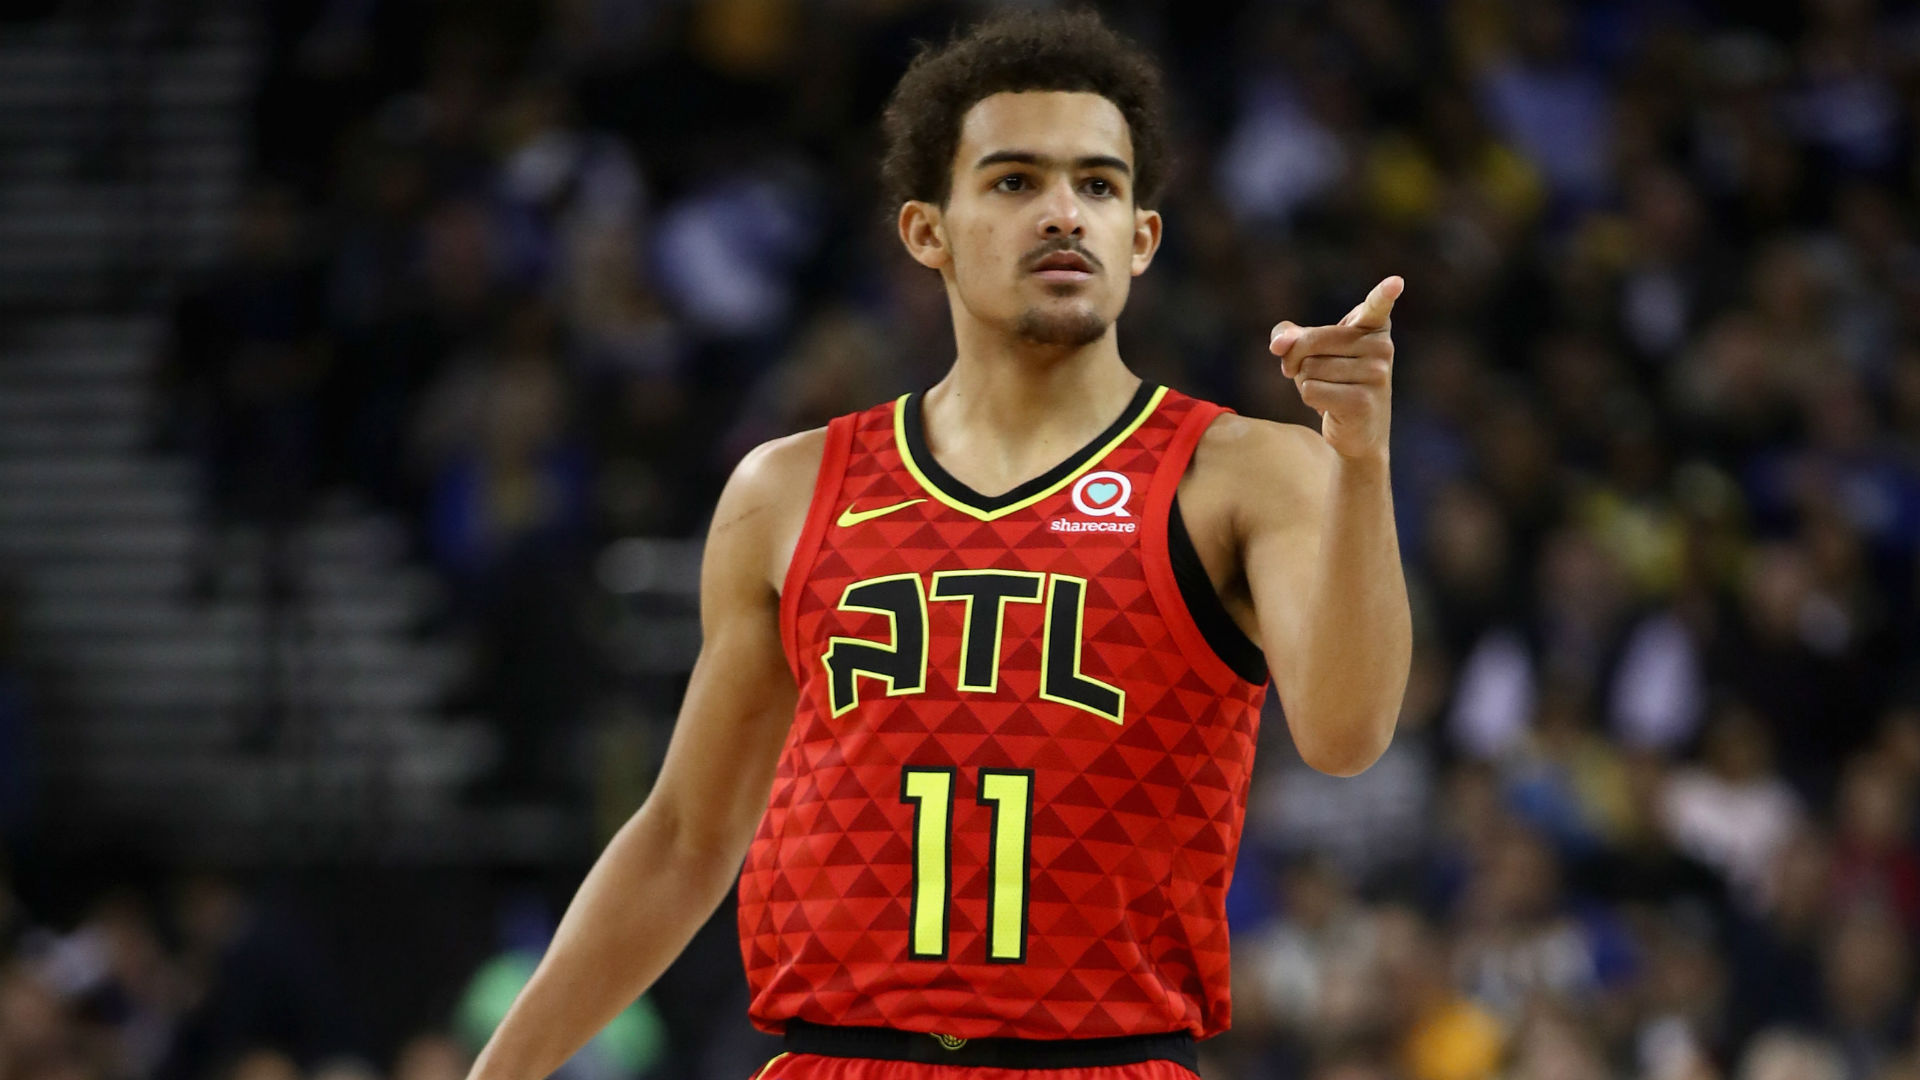 Hawks' Trae Young reveals pitch to free agents: 'I'm going to make sure I get you the ball'